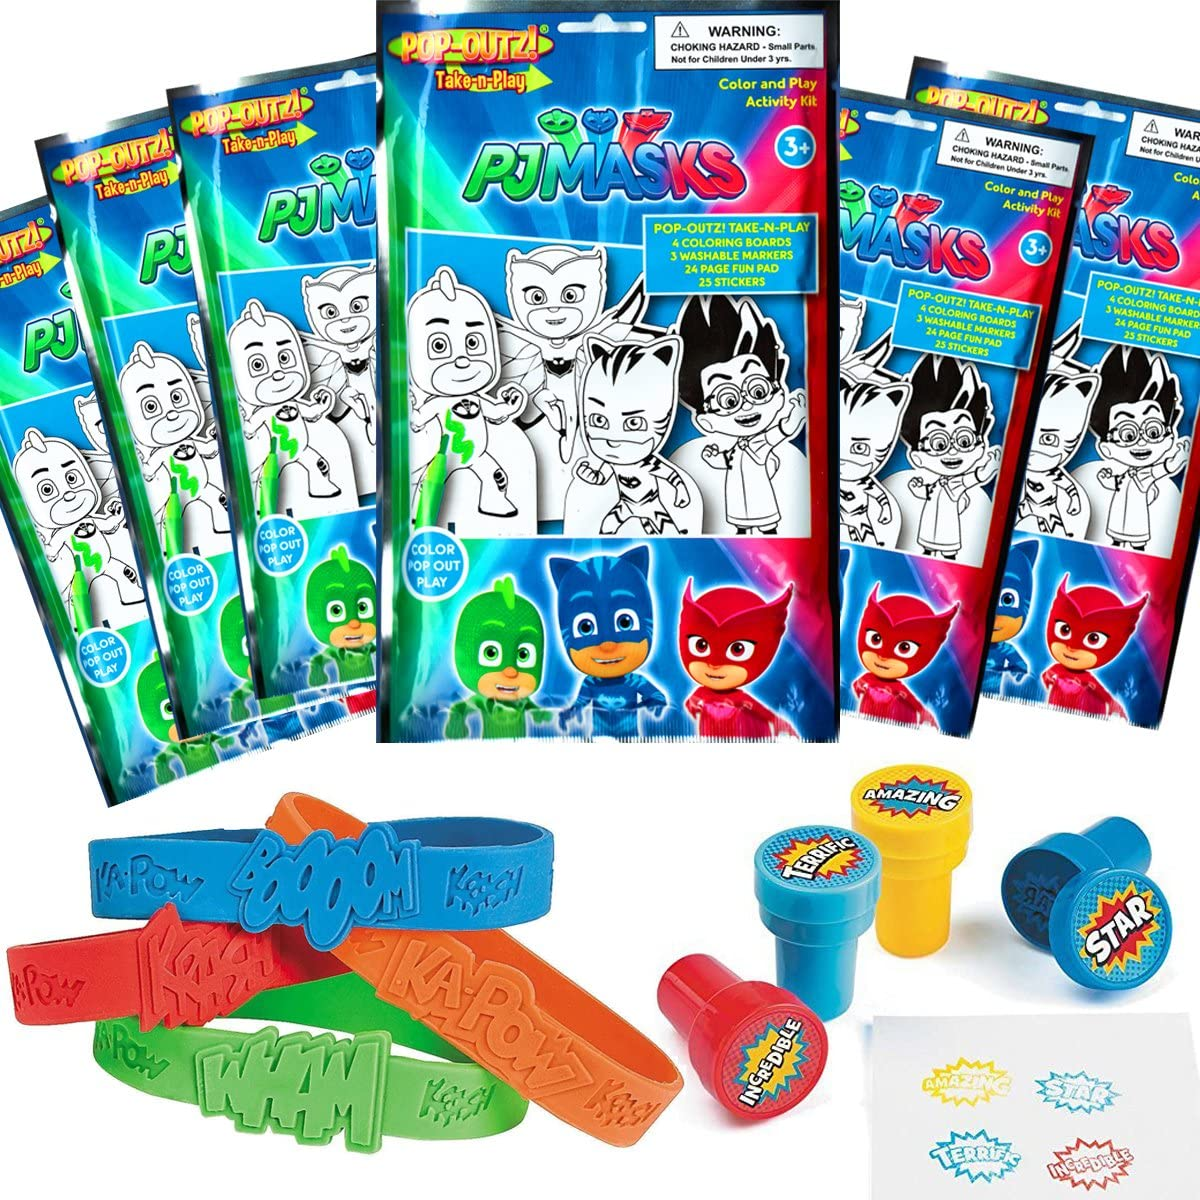 Crayons Coloring Books PJ Masks Party Favors Pack ~ Bundle of 12 PJ Masks Play Packs Filled with Stickers PJ Masks Party Supplies